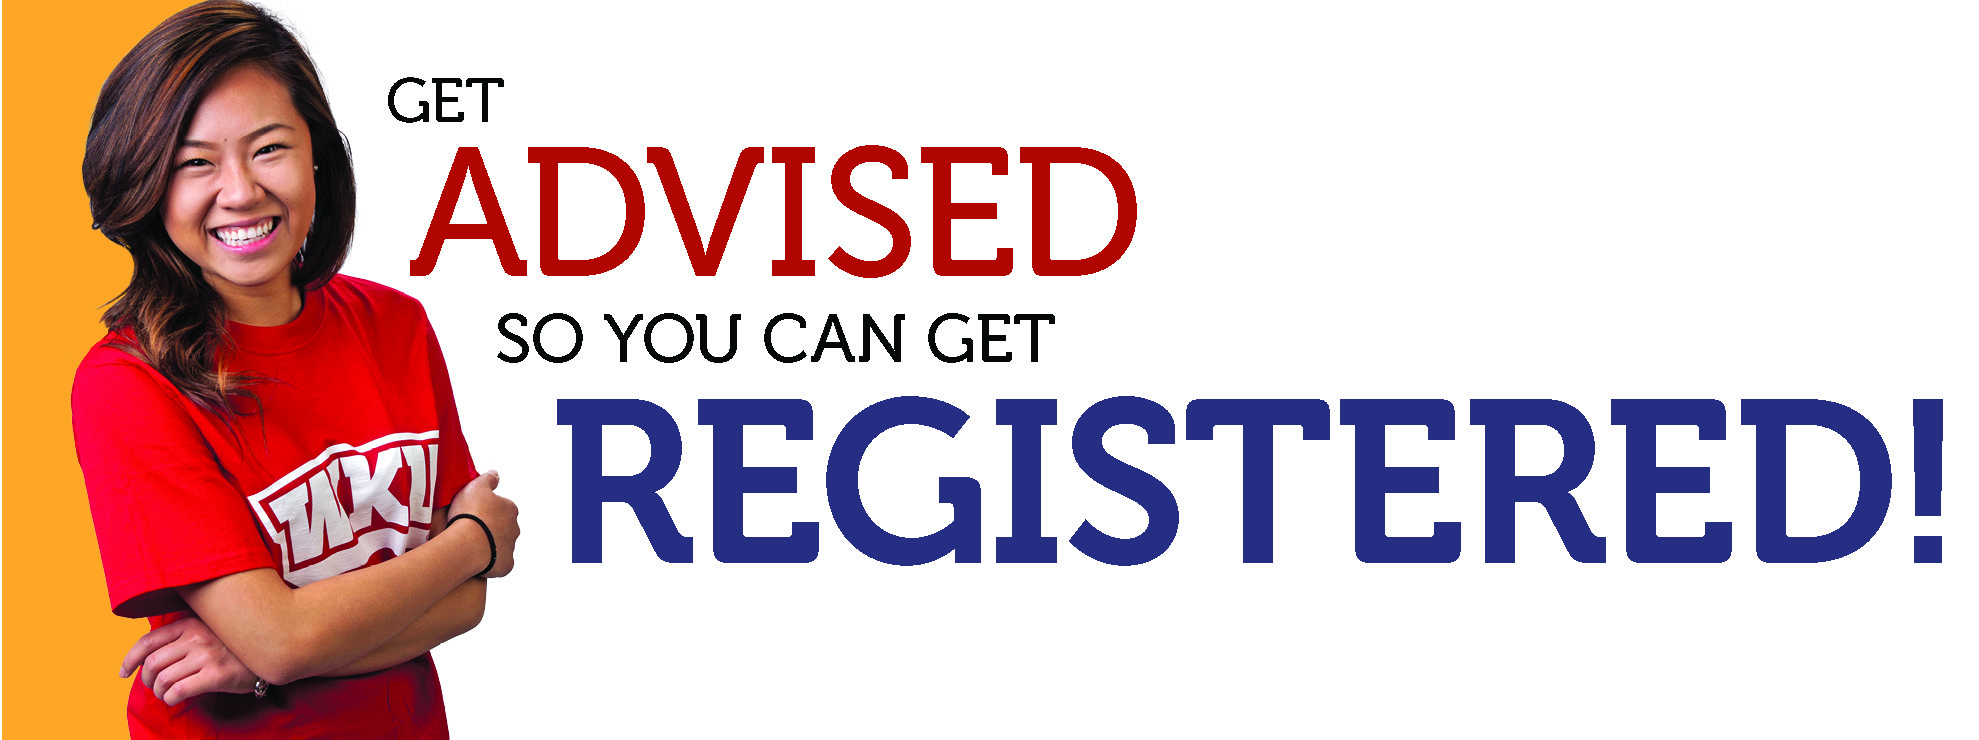 Get Advised So You Can get Registered!